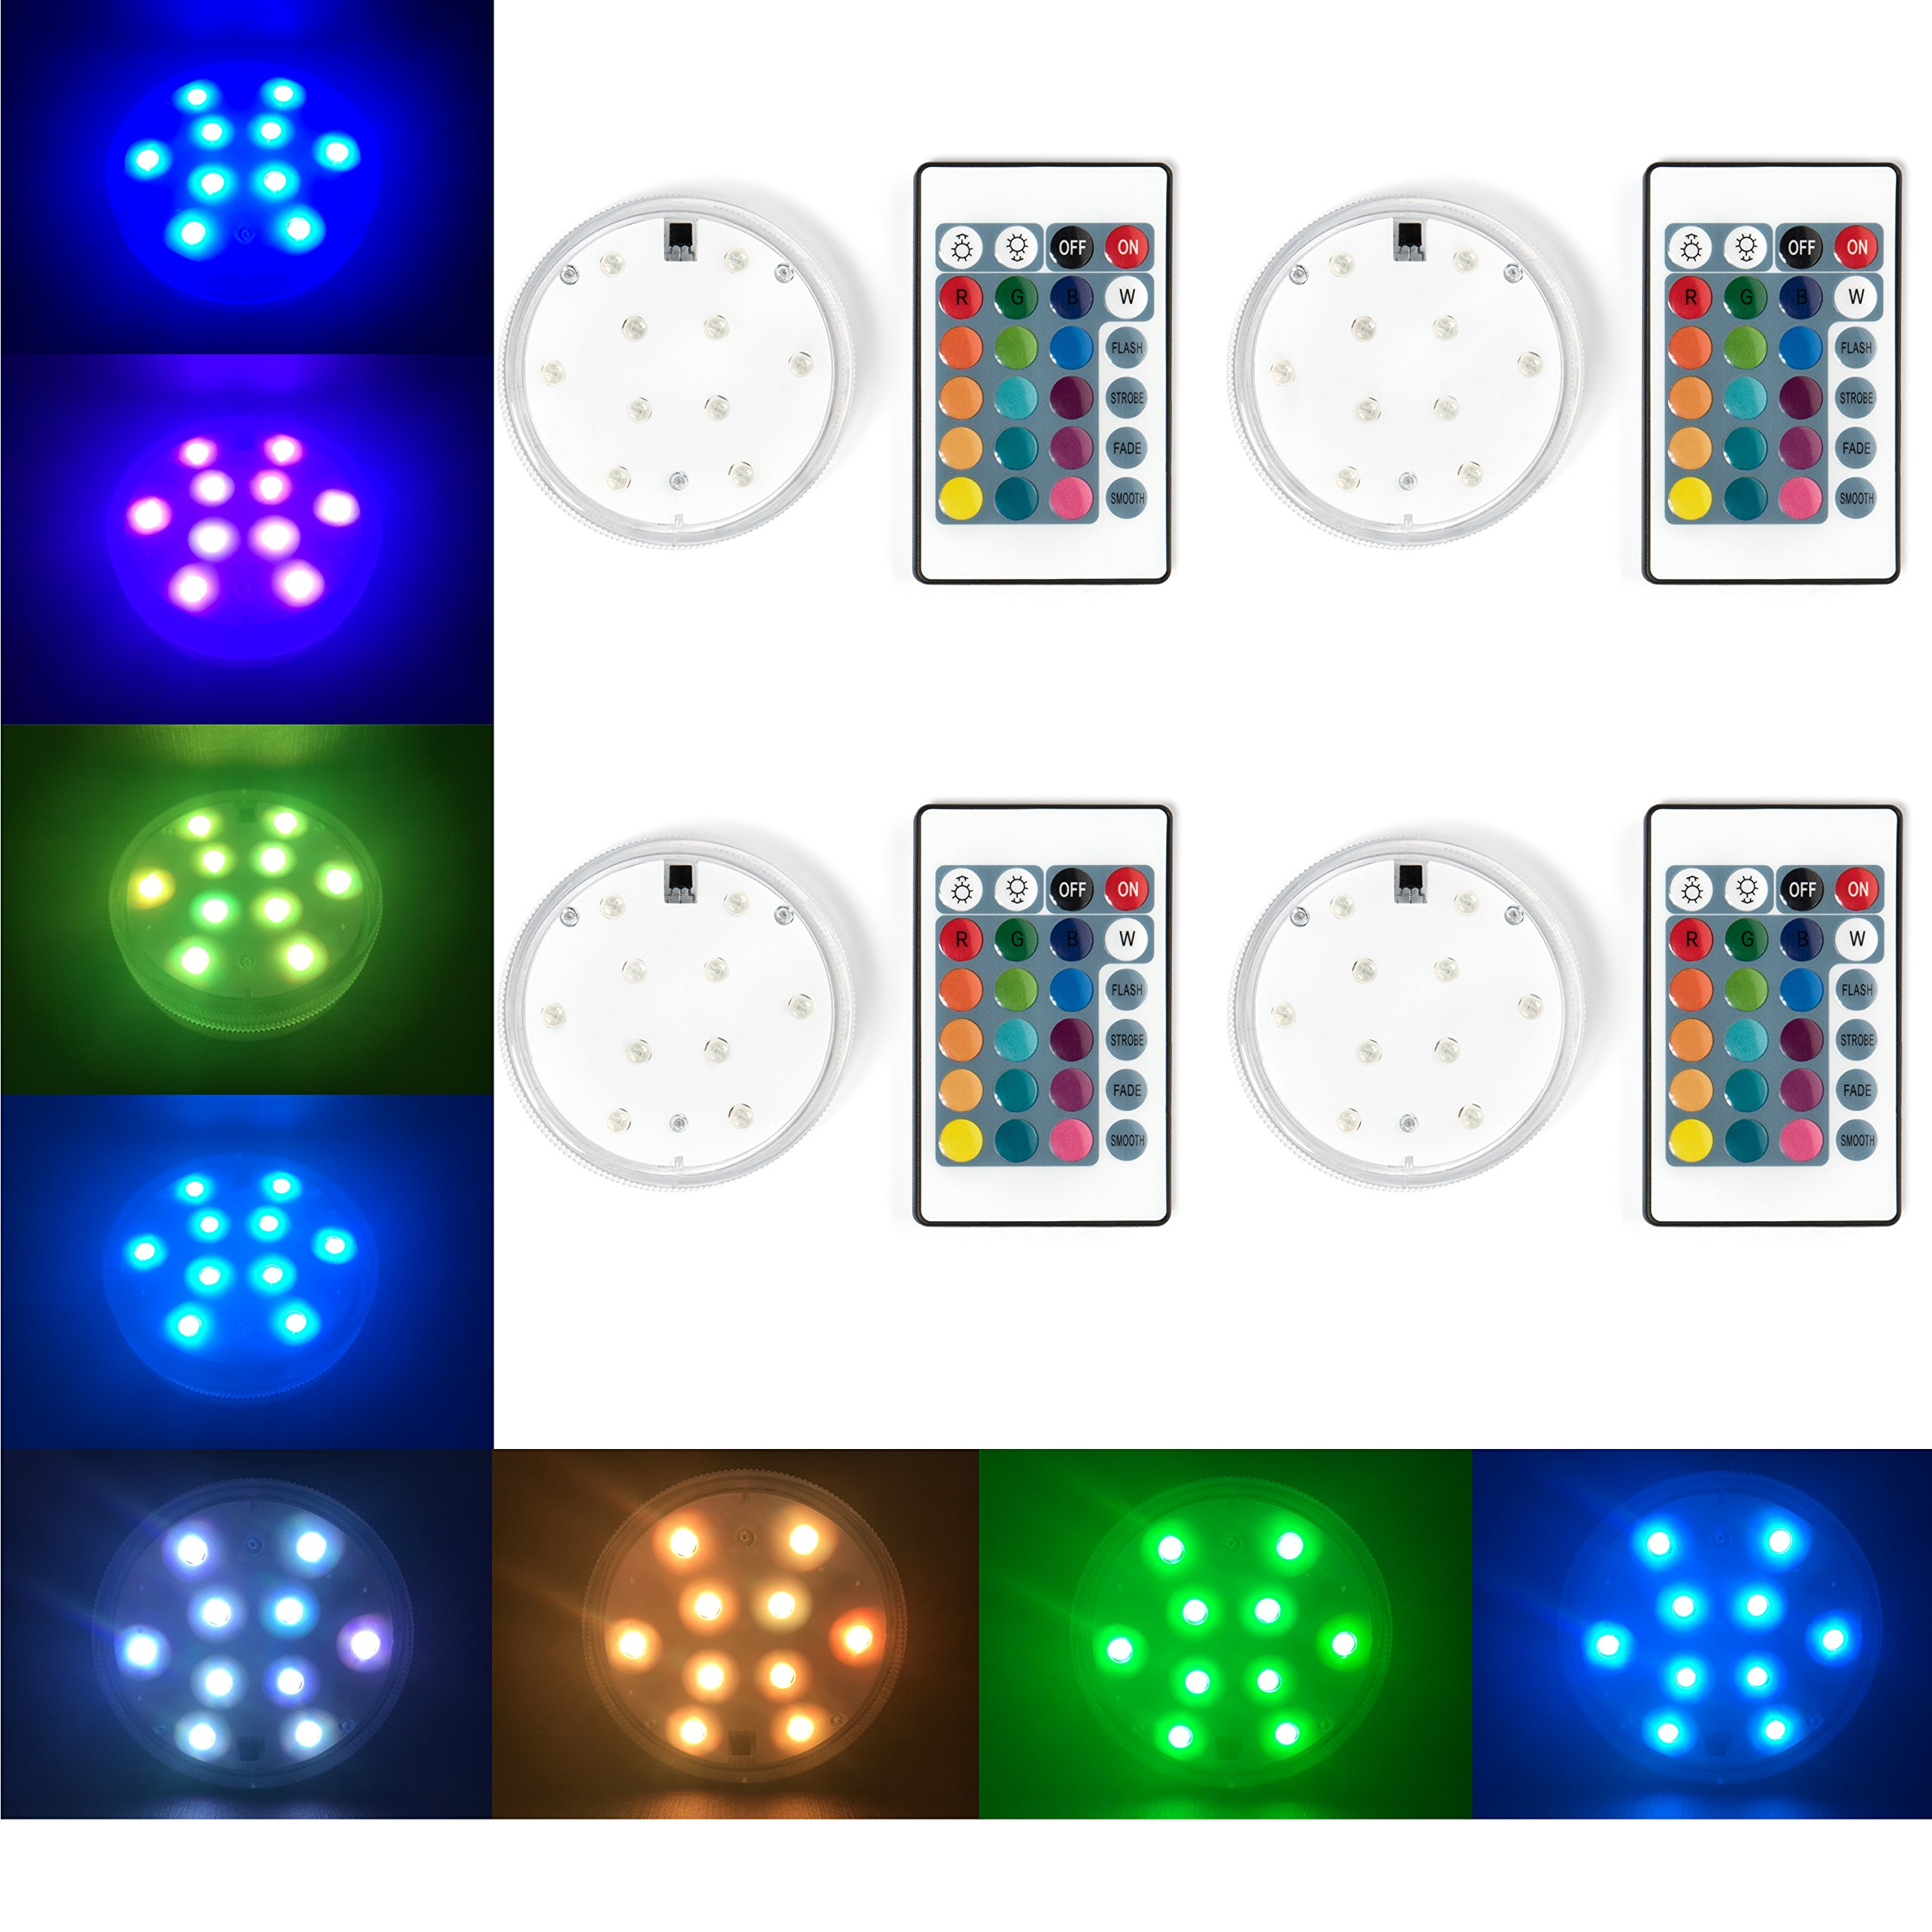 Submersible LED Lights with Remote [4 Pack], Fountain Lights, Pond Lights, Underwater Submersible LED Lights ~ Non-Flicker Multicolor LED Lighting for a Smooth Out-of-This-World Light Show!